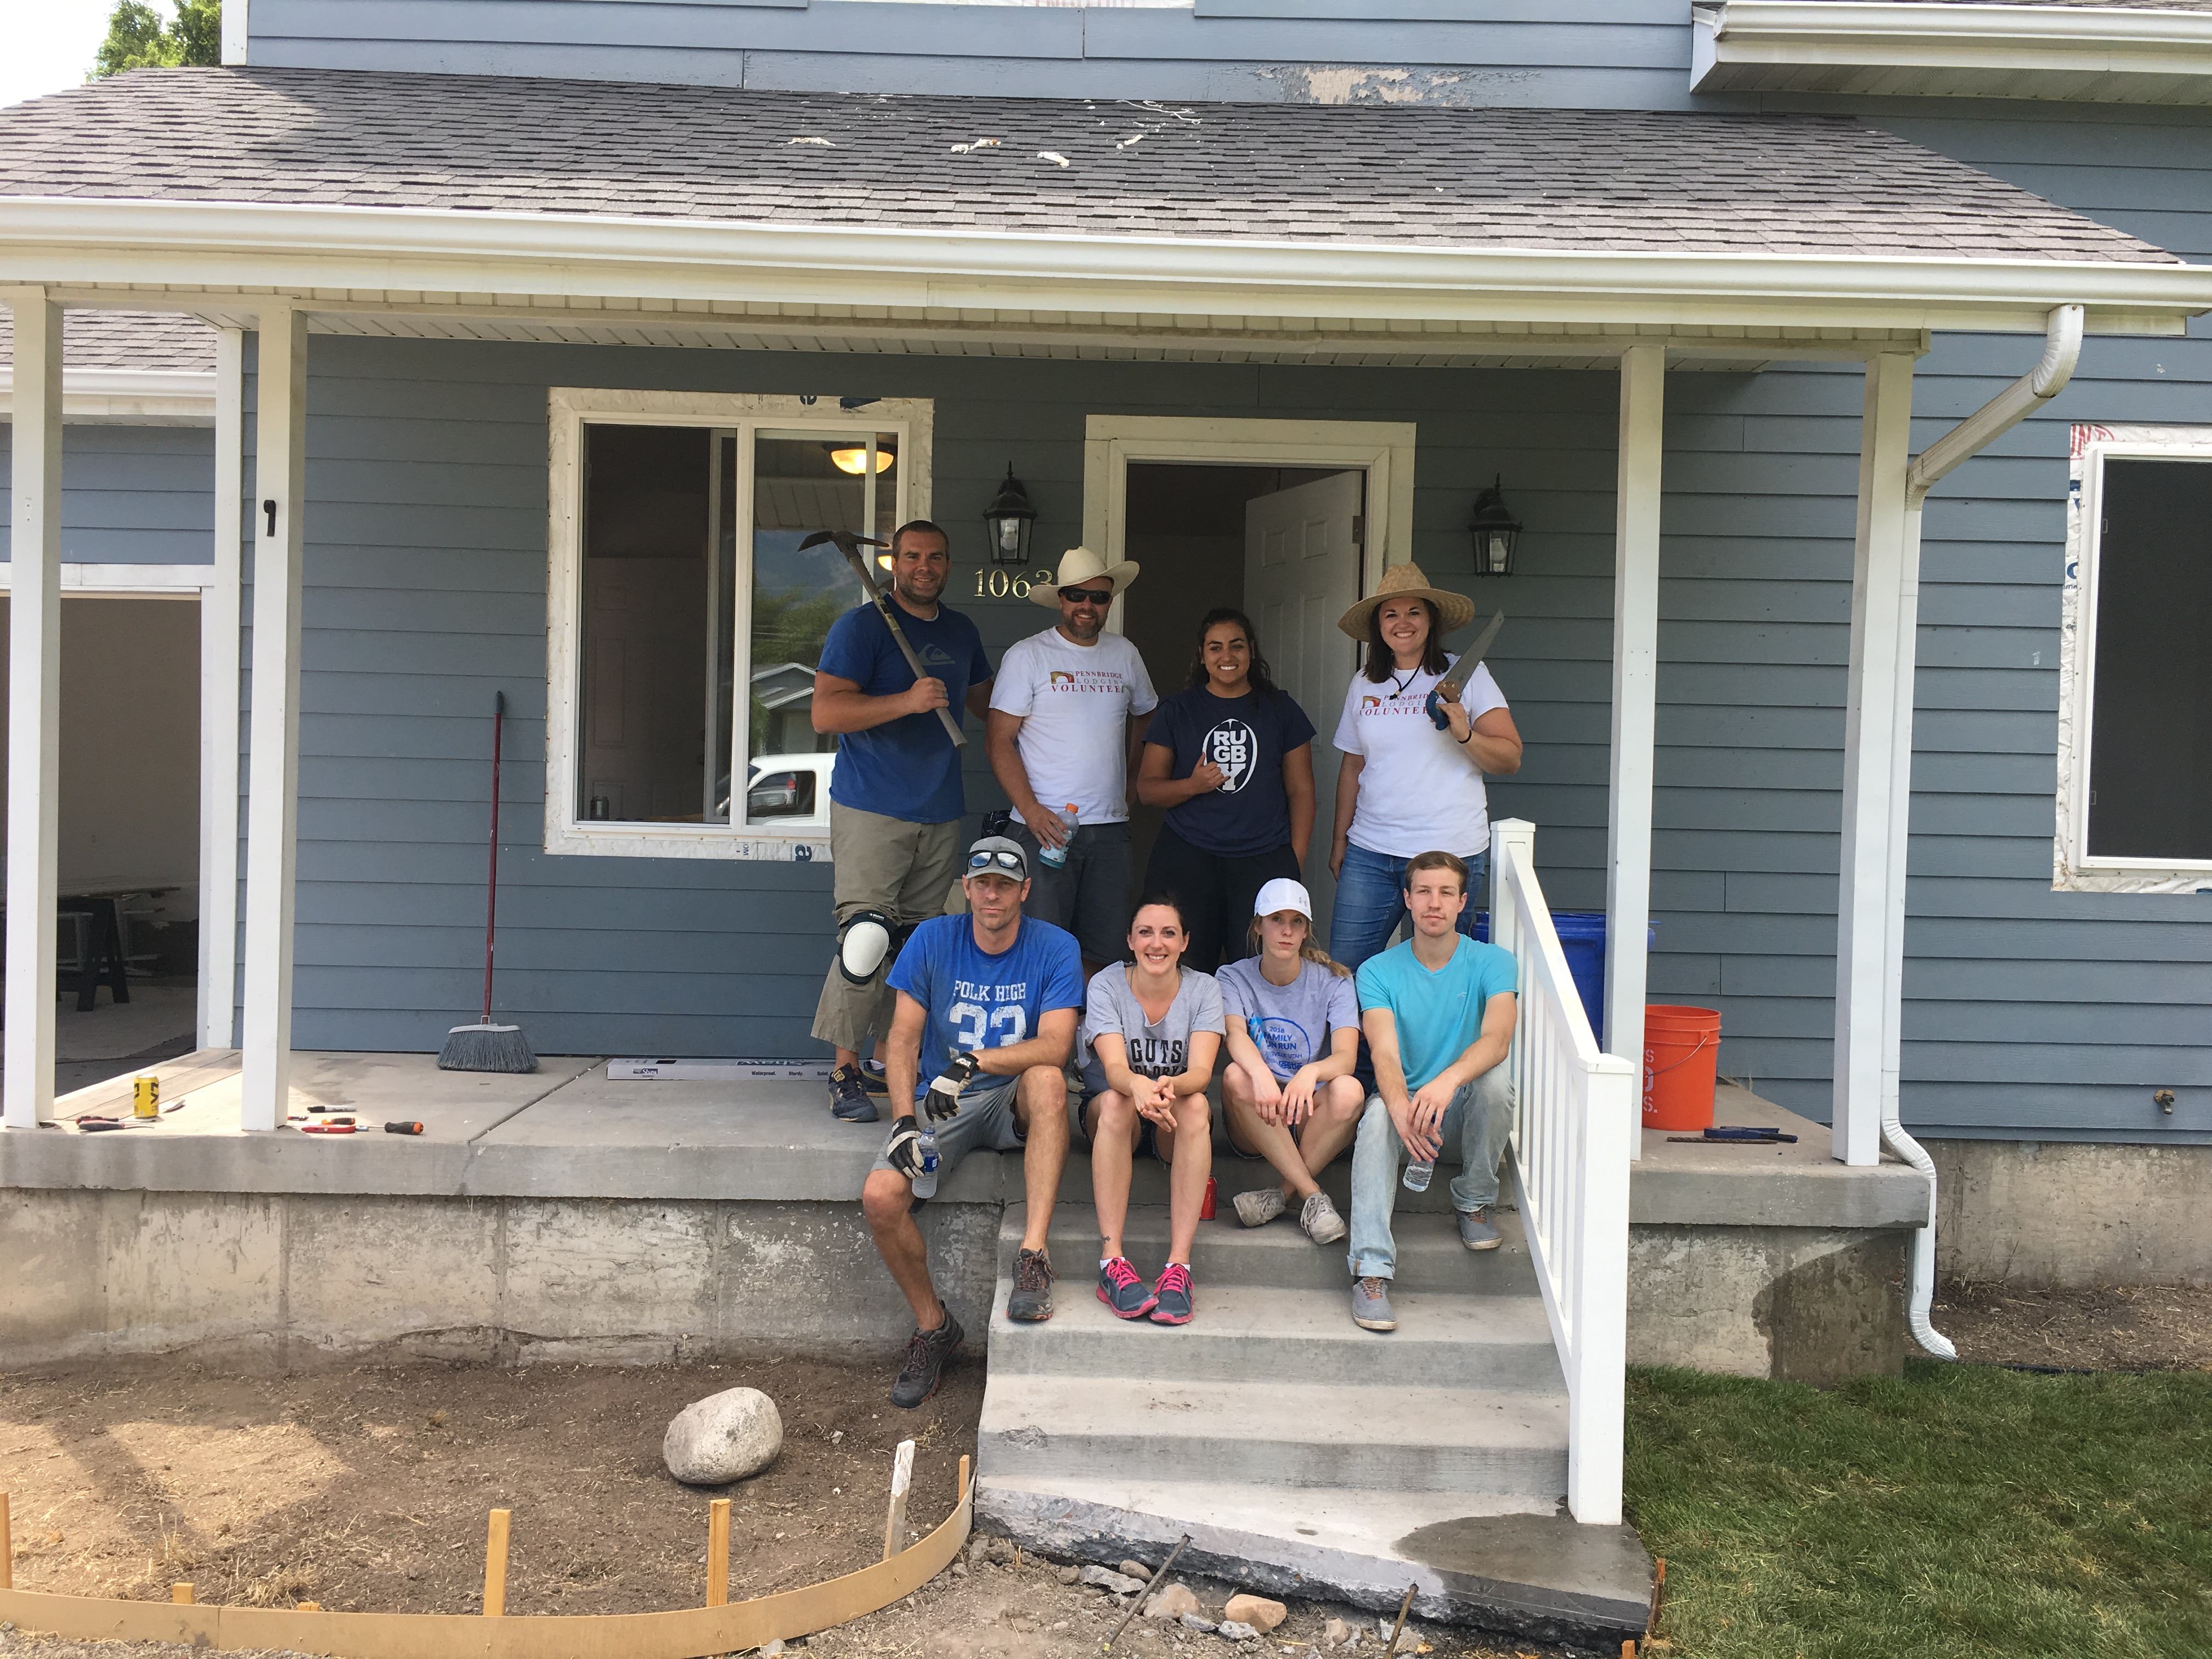 Team members from the Fairfield Inn and Suites and Towneplace Suites in Orem, UT along with the Pennbridge corporate office joined forces with Habitat for Humanity to install flooring and lay sod at a home in Provo, UT.… Continue Reading..